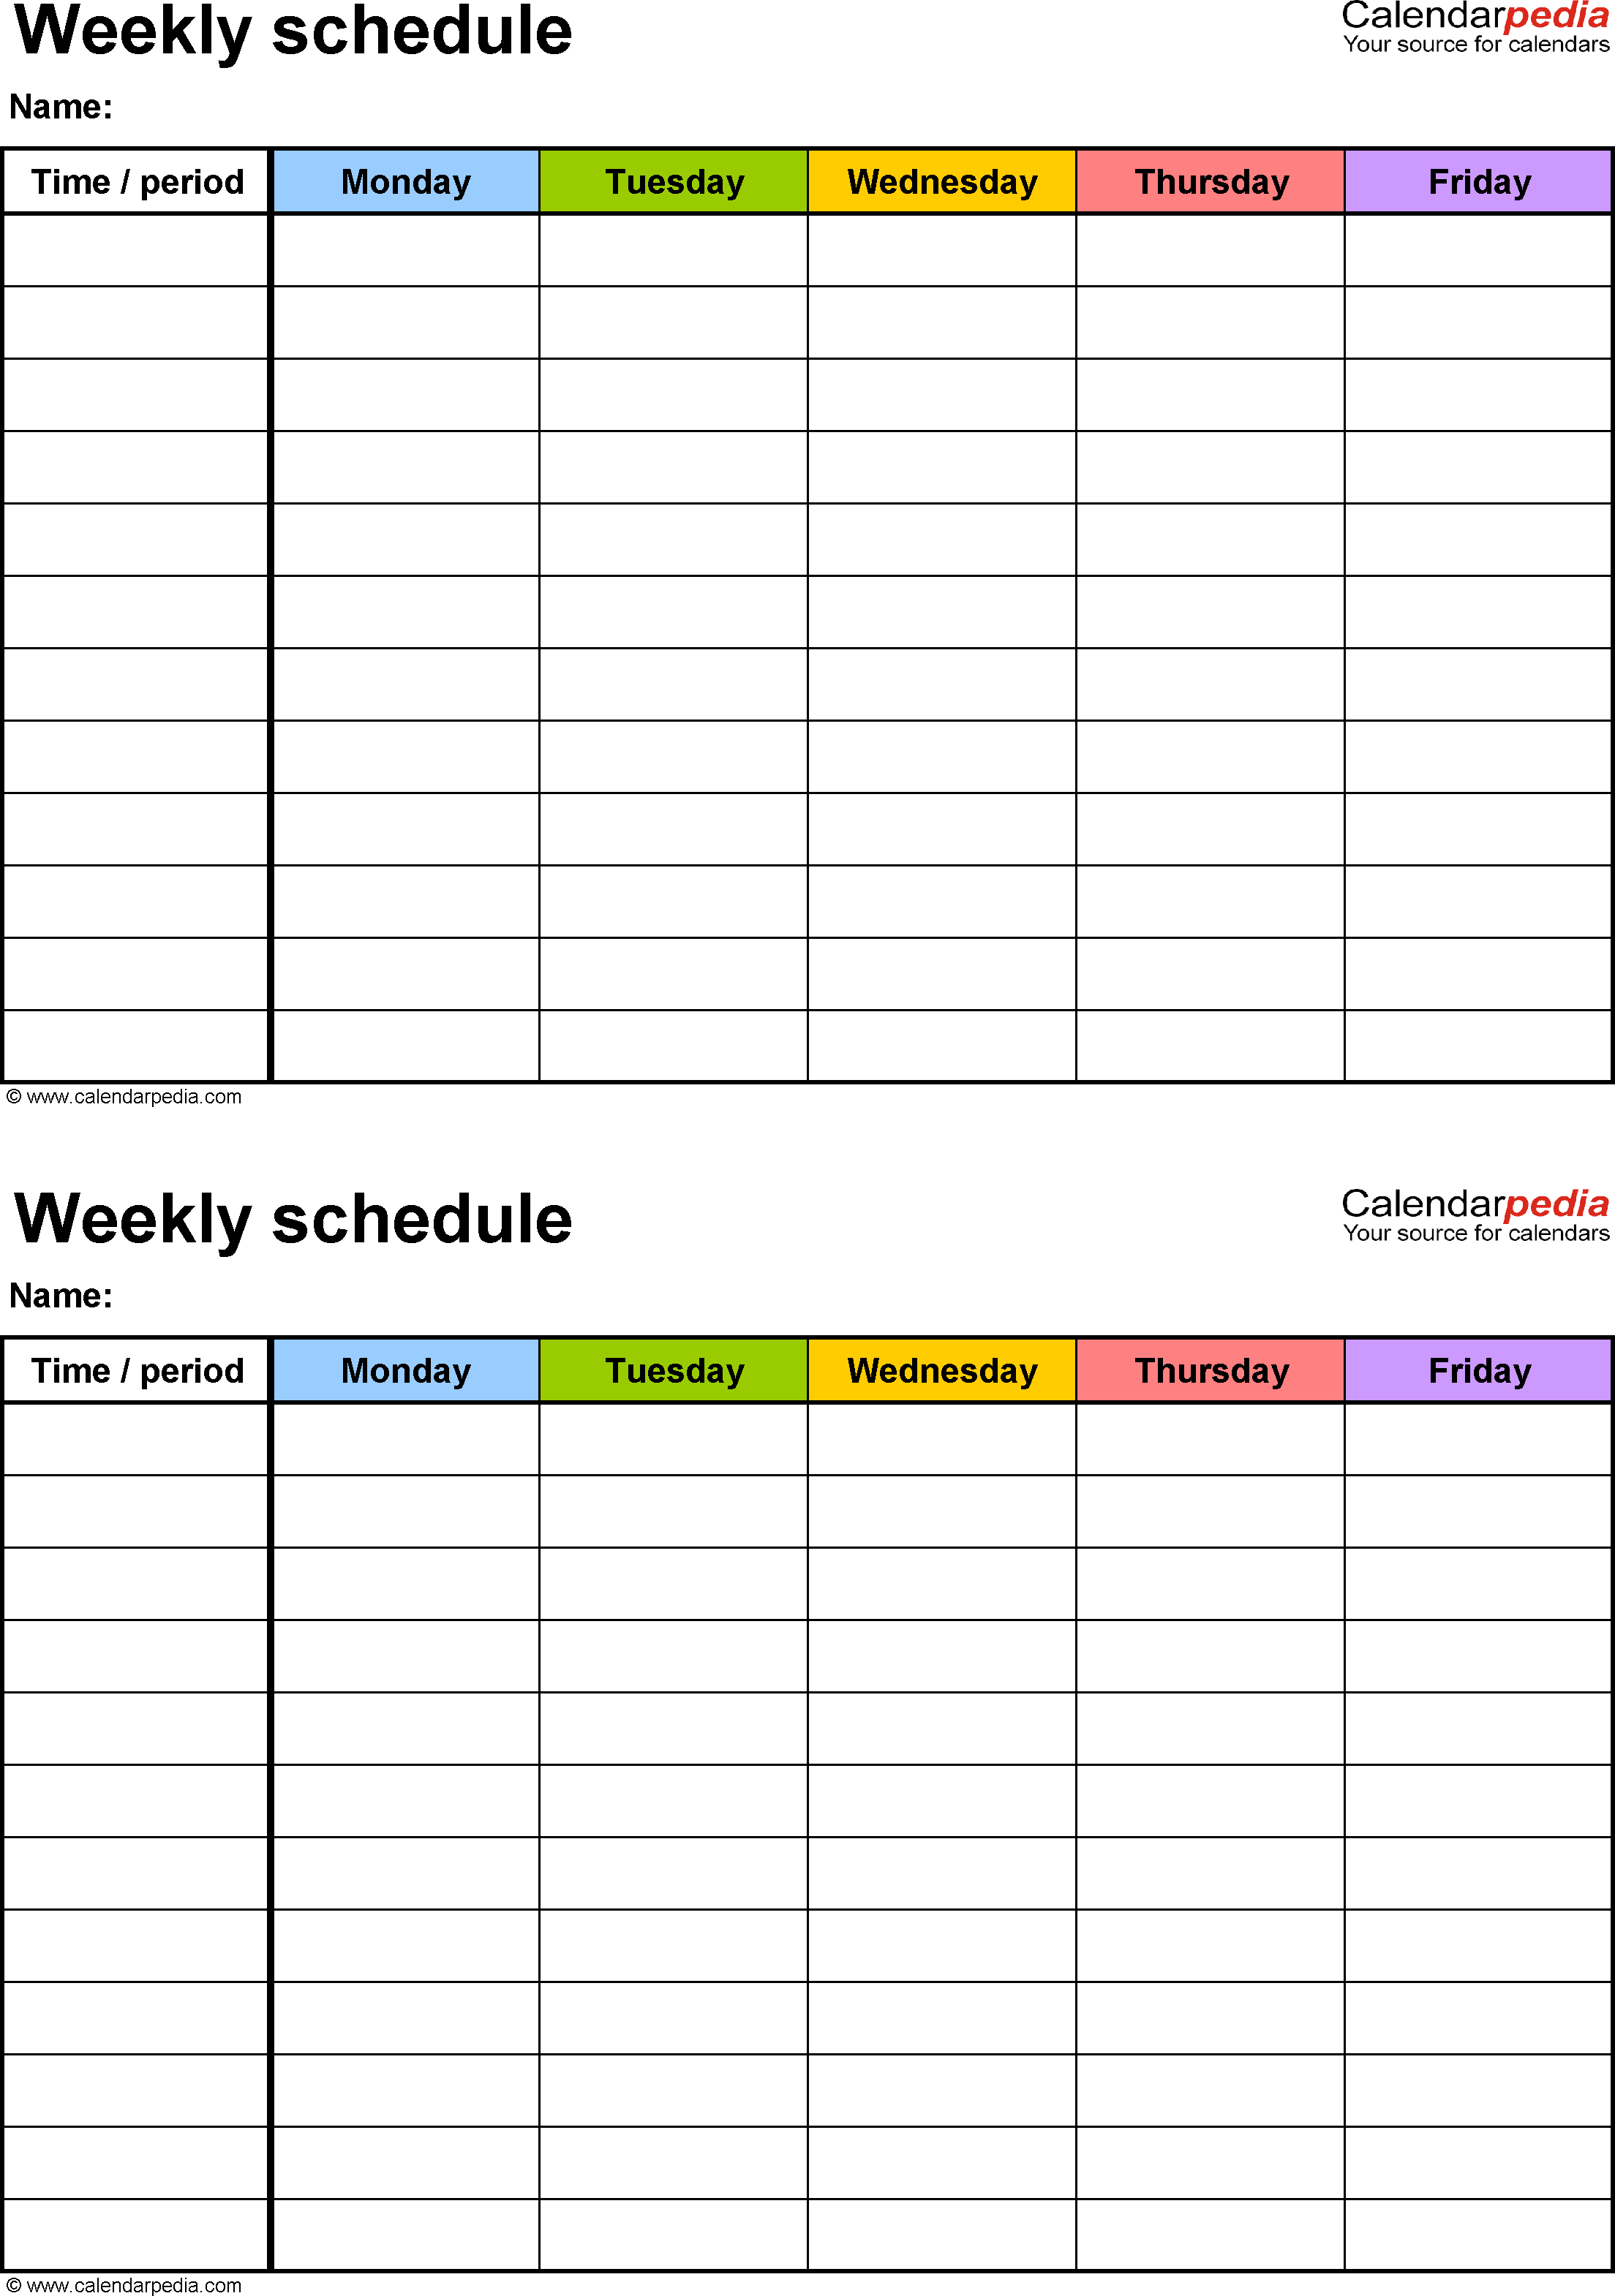 Weekly schedule template for excel version 3 2 schedules on one weekly schedule template for excel version 3 2 schedules on one page portrait pronofoot35fo Gallery